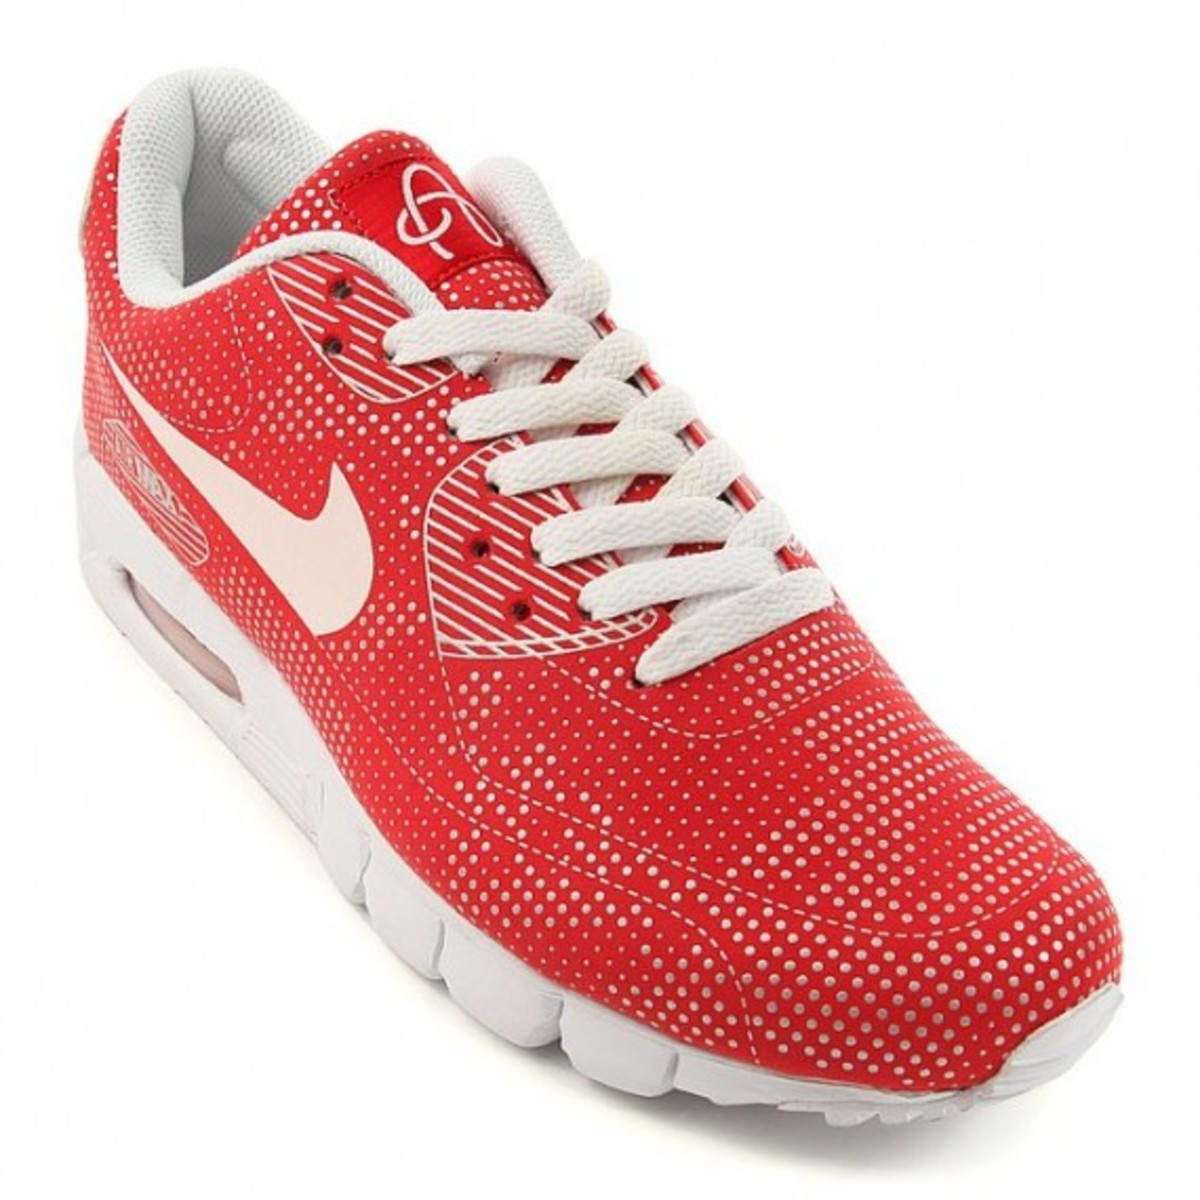 nike-air-max-90-current-2010-red-01